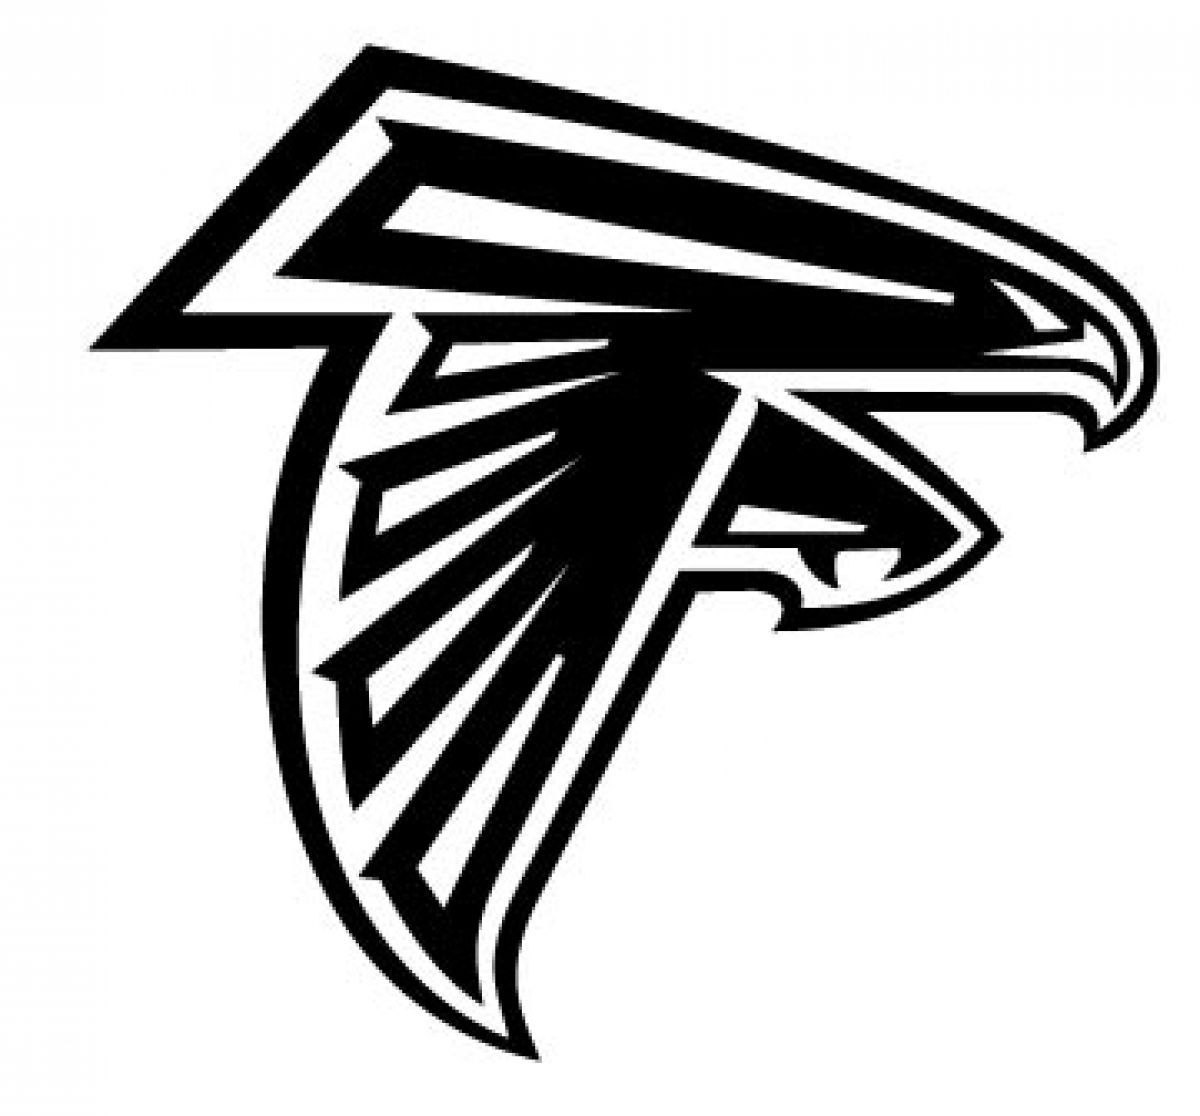 atlanta falcons logos atlanta falcons logo vinyl cut out decal choose your falcons atlanta logos